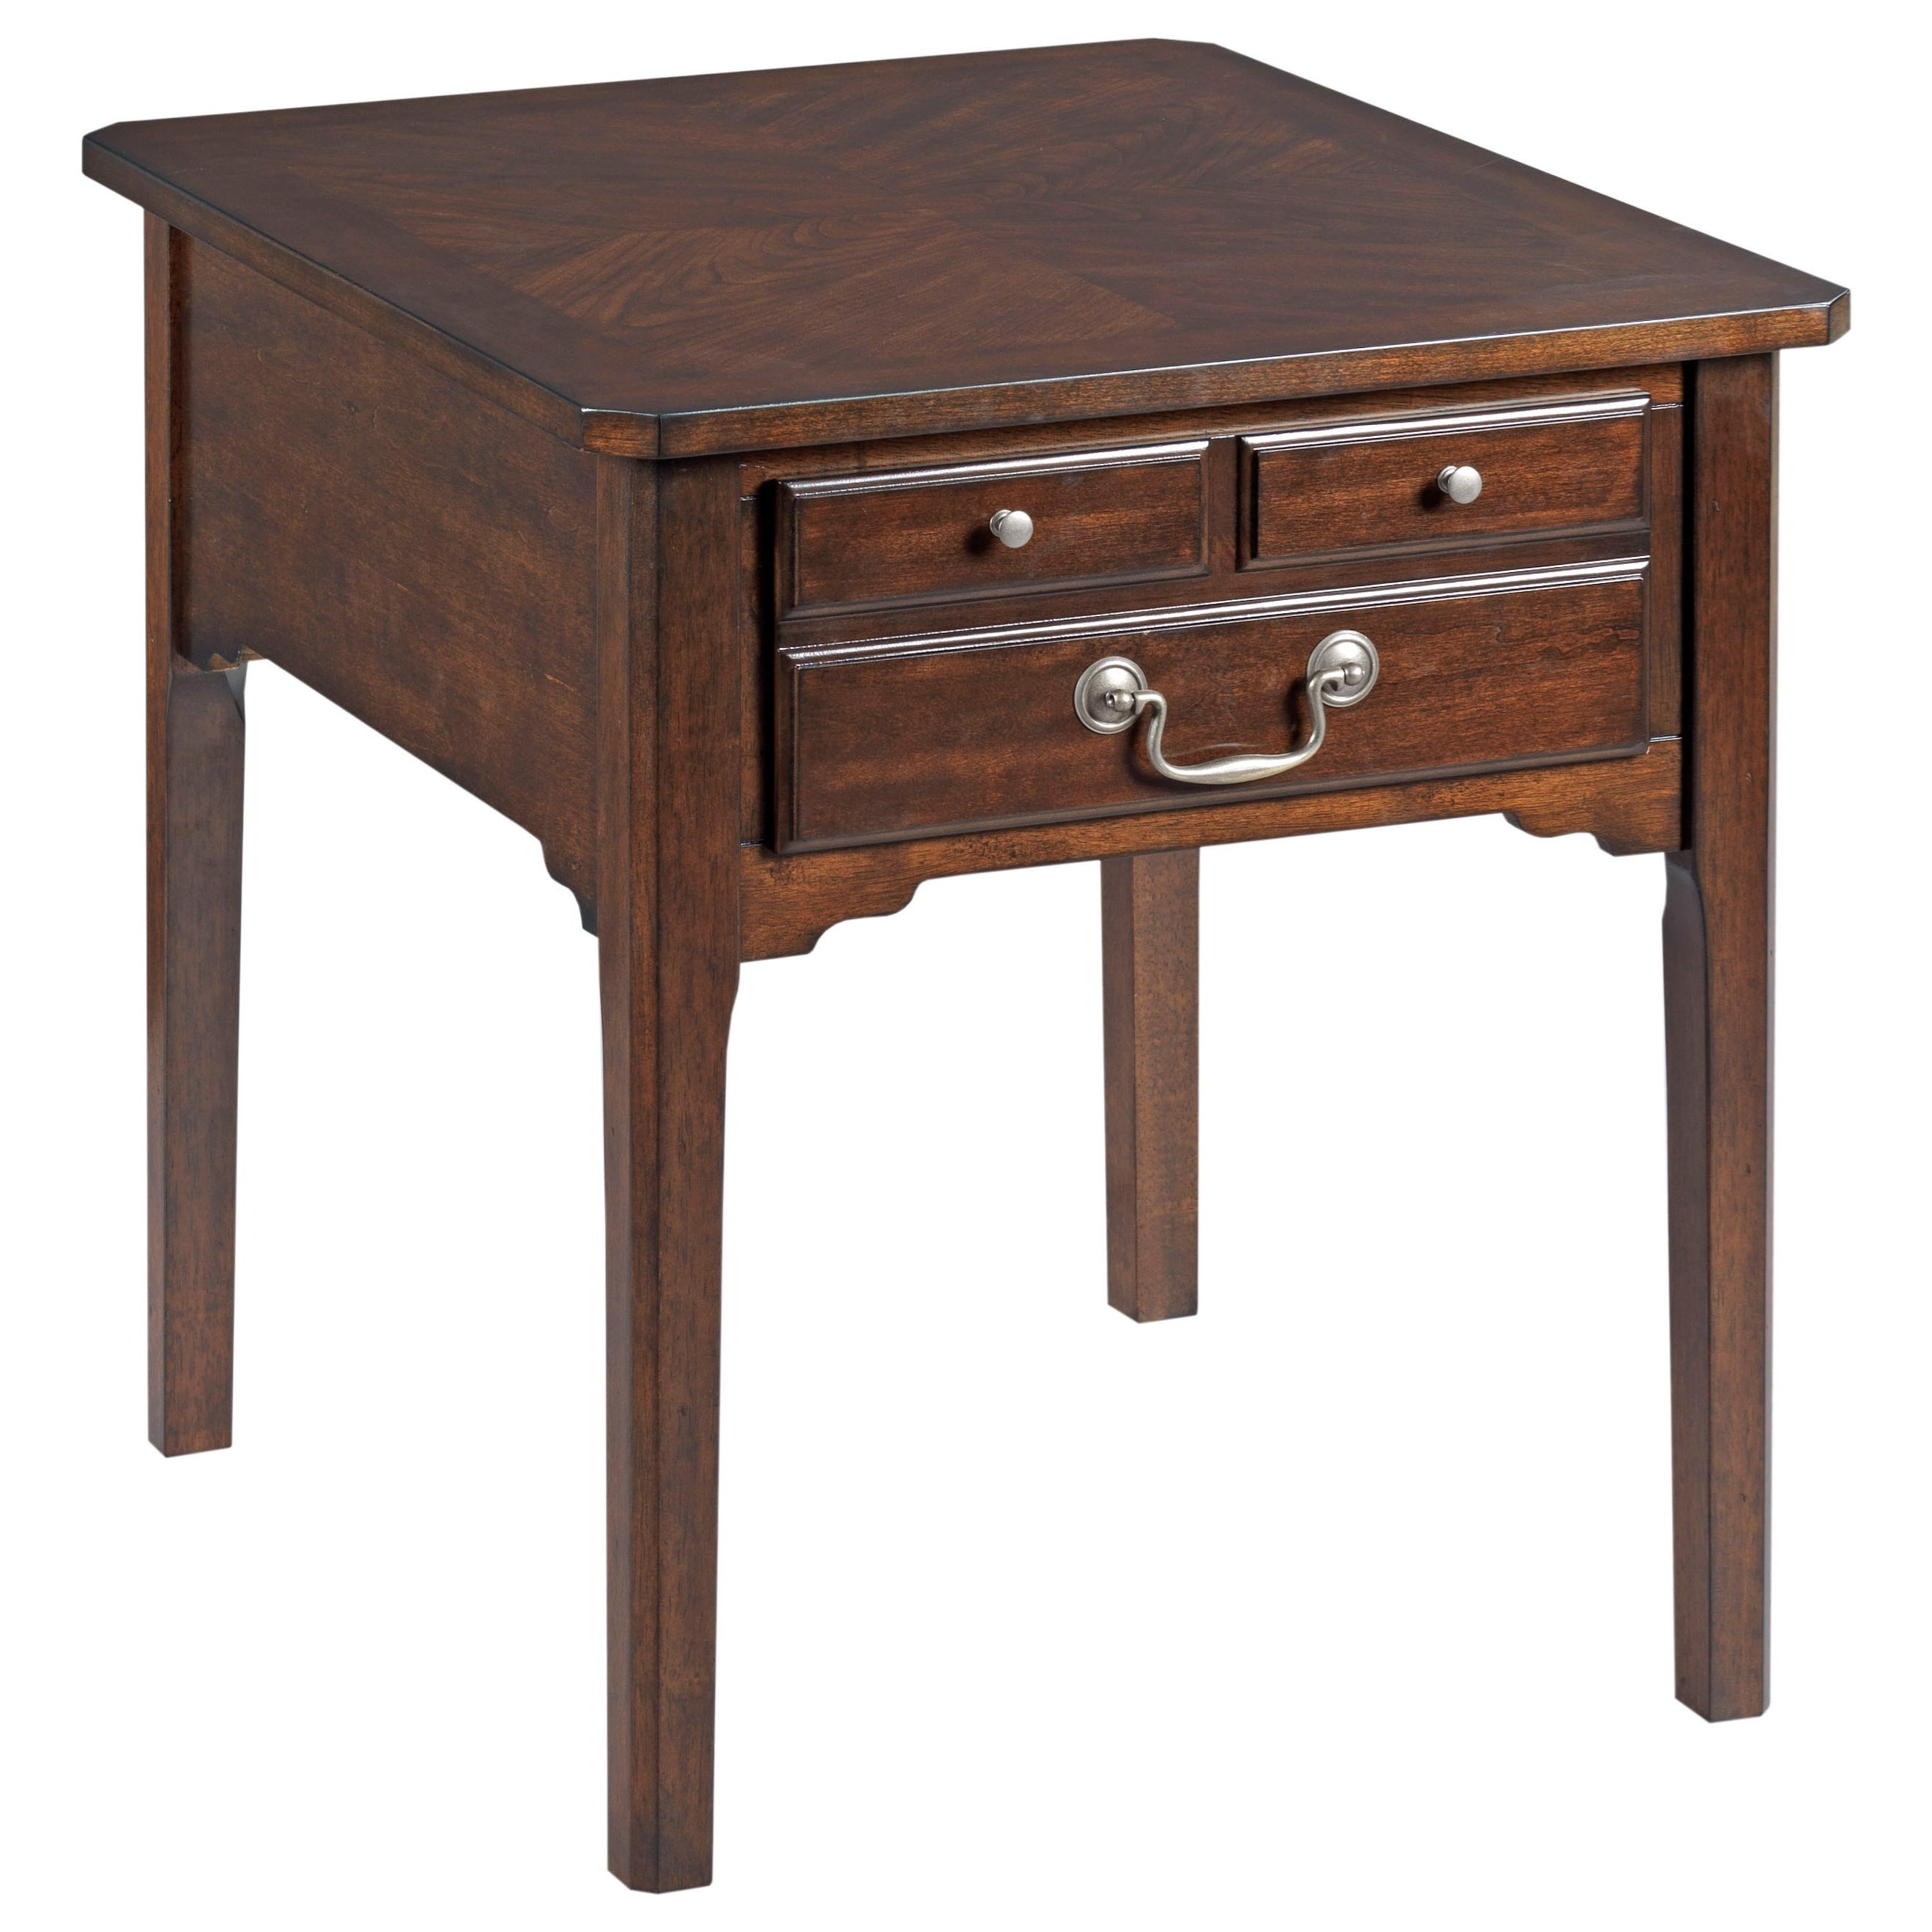 Arcadia Rectangular Drawer End Table by England at Virginia Furniture Market